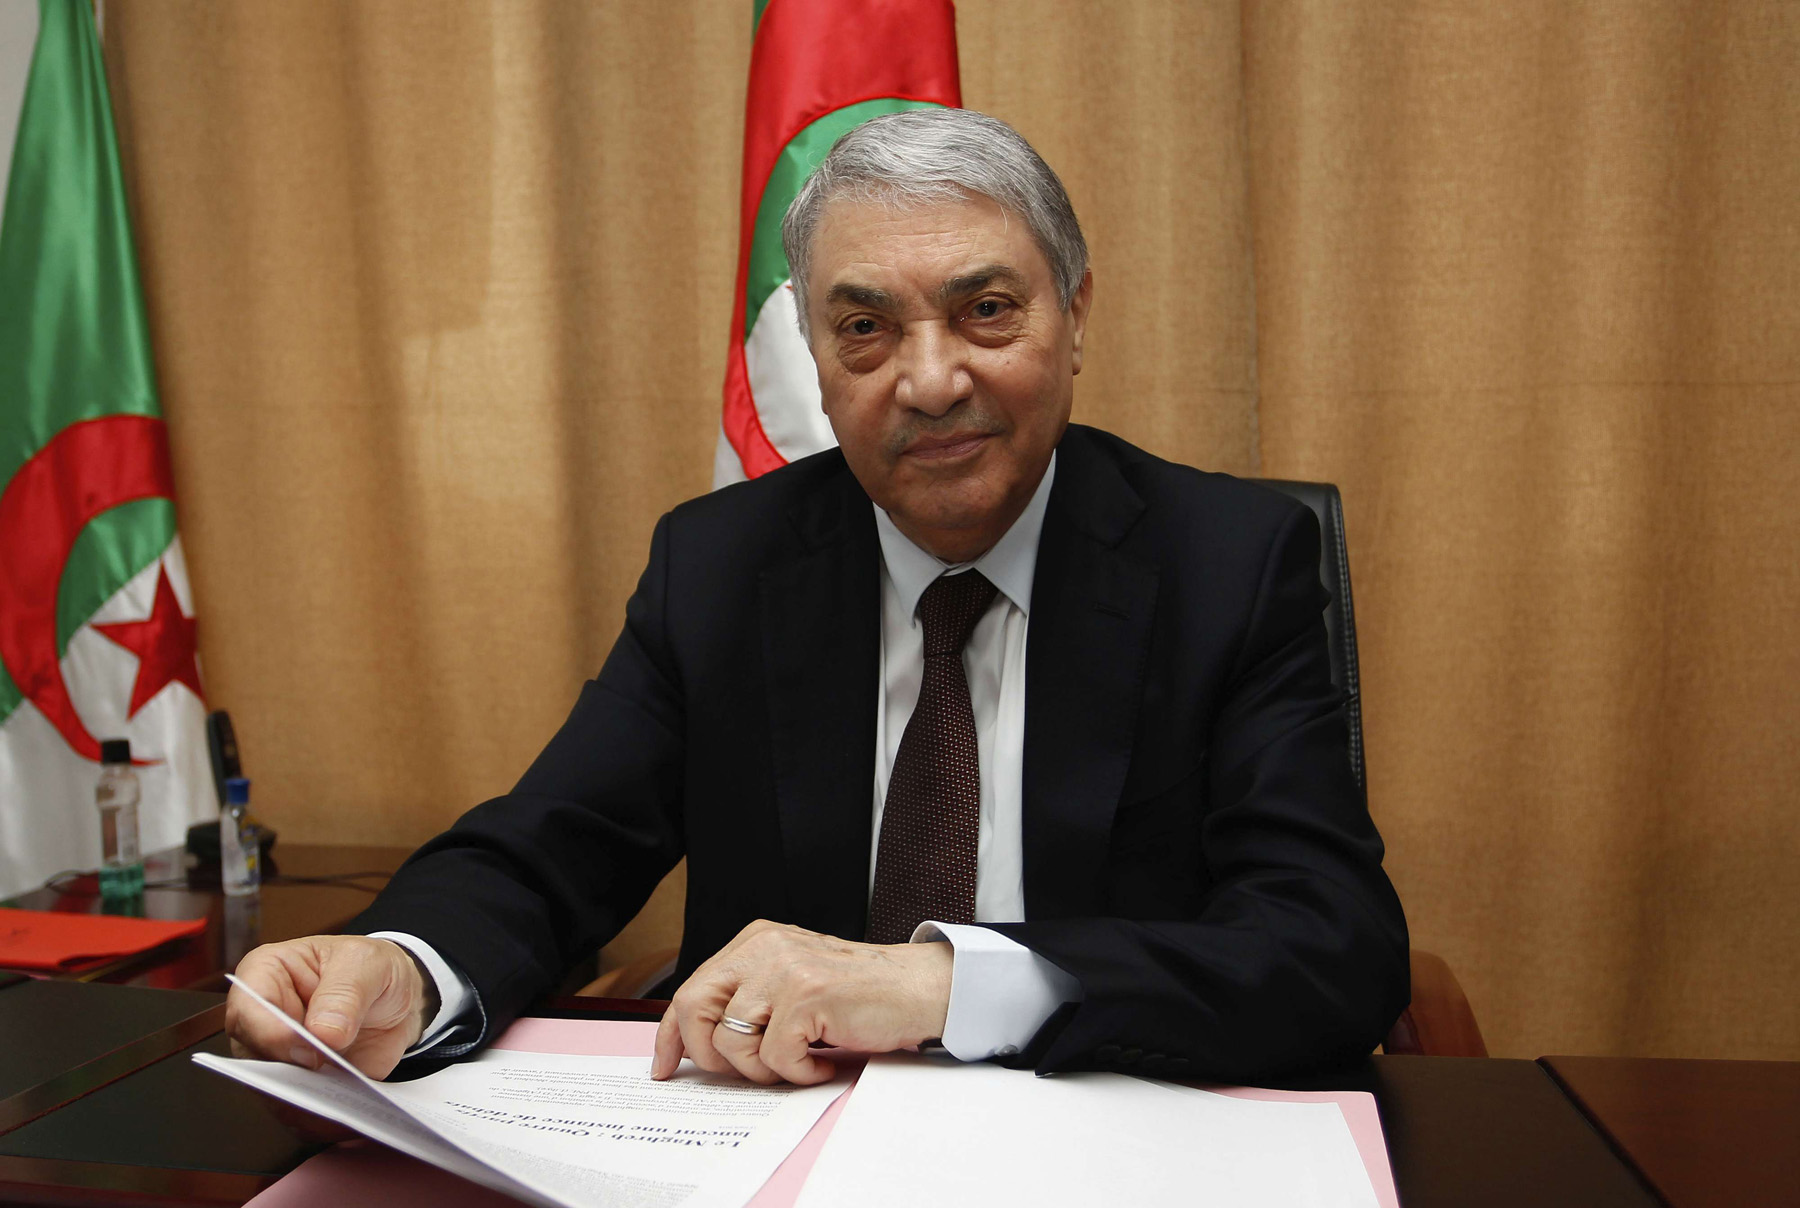 In this file photo from March 2018, former Algerian Prime Minister Ali Benflis talks to the Associated Press in Algiers. Benflis has announced on Sunday, Jan. 20, 2019 that he will run for president in next year's election. (AP)